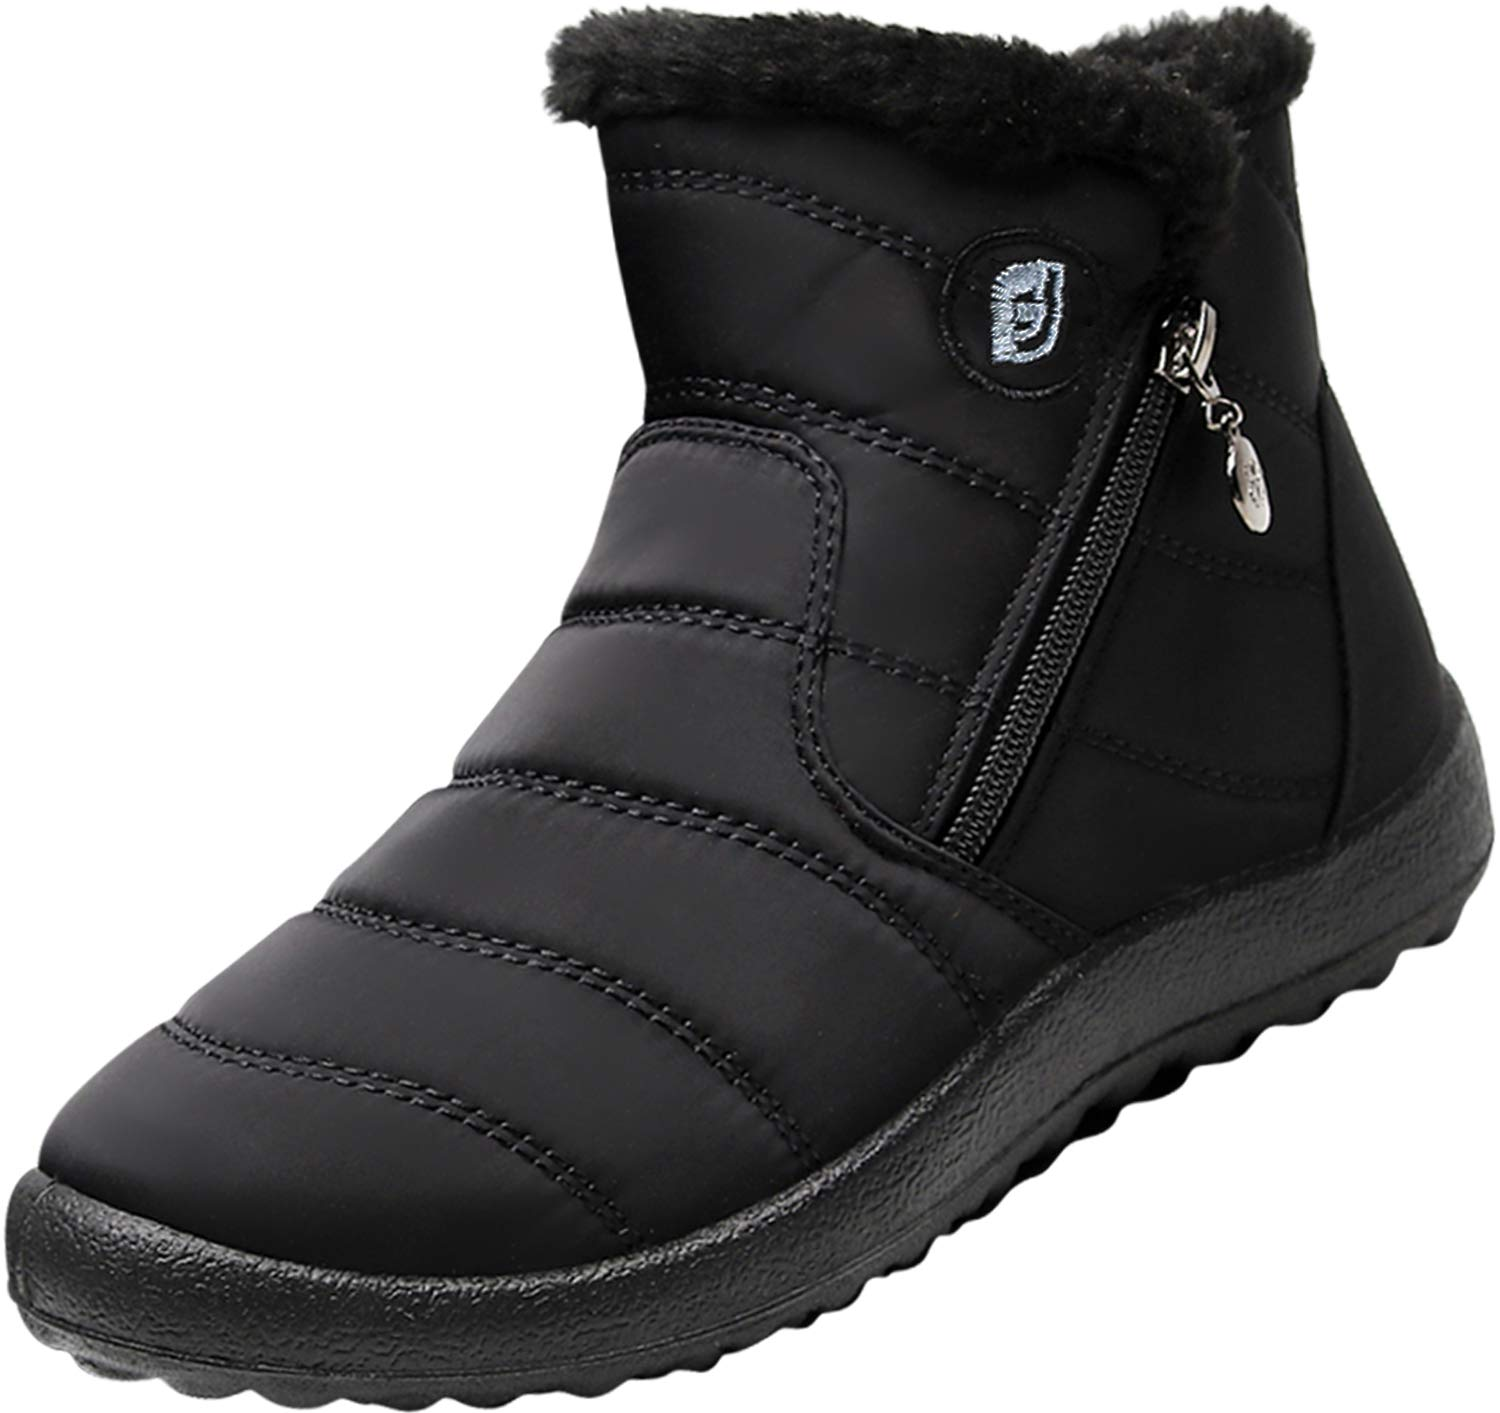 JOINFREE Womens Waterproof Snow Boots Fur Lining Slip On with Rubber Soles Middle Black 8.5 M US